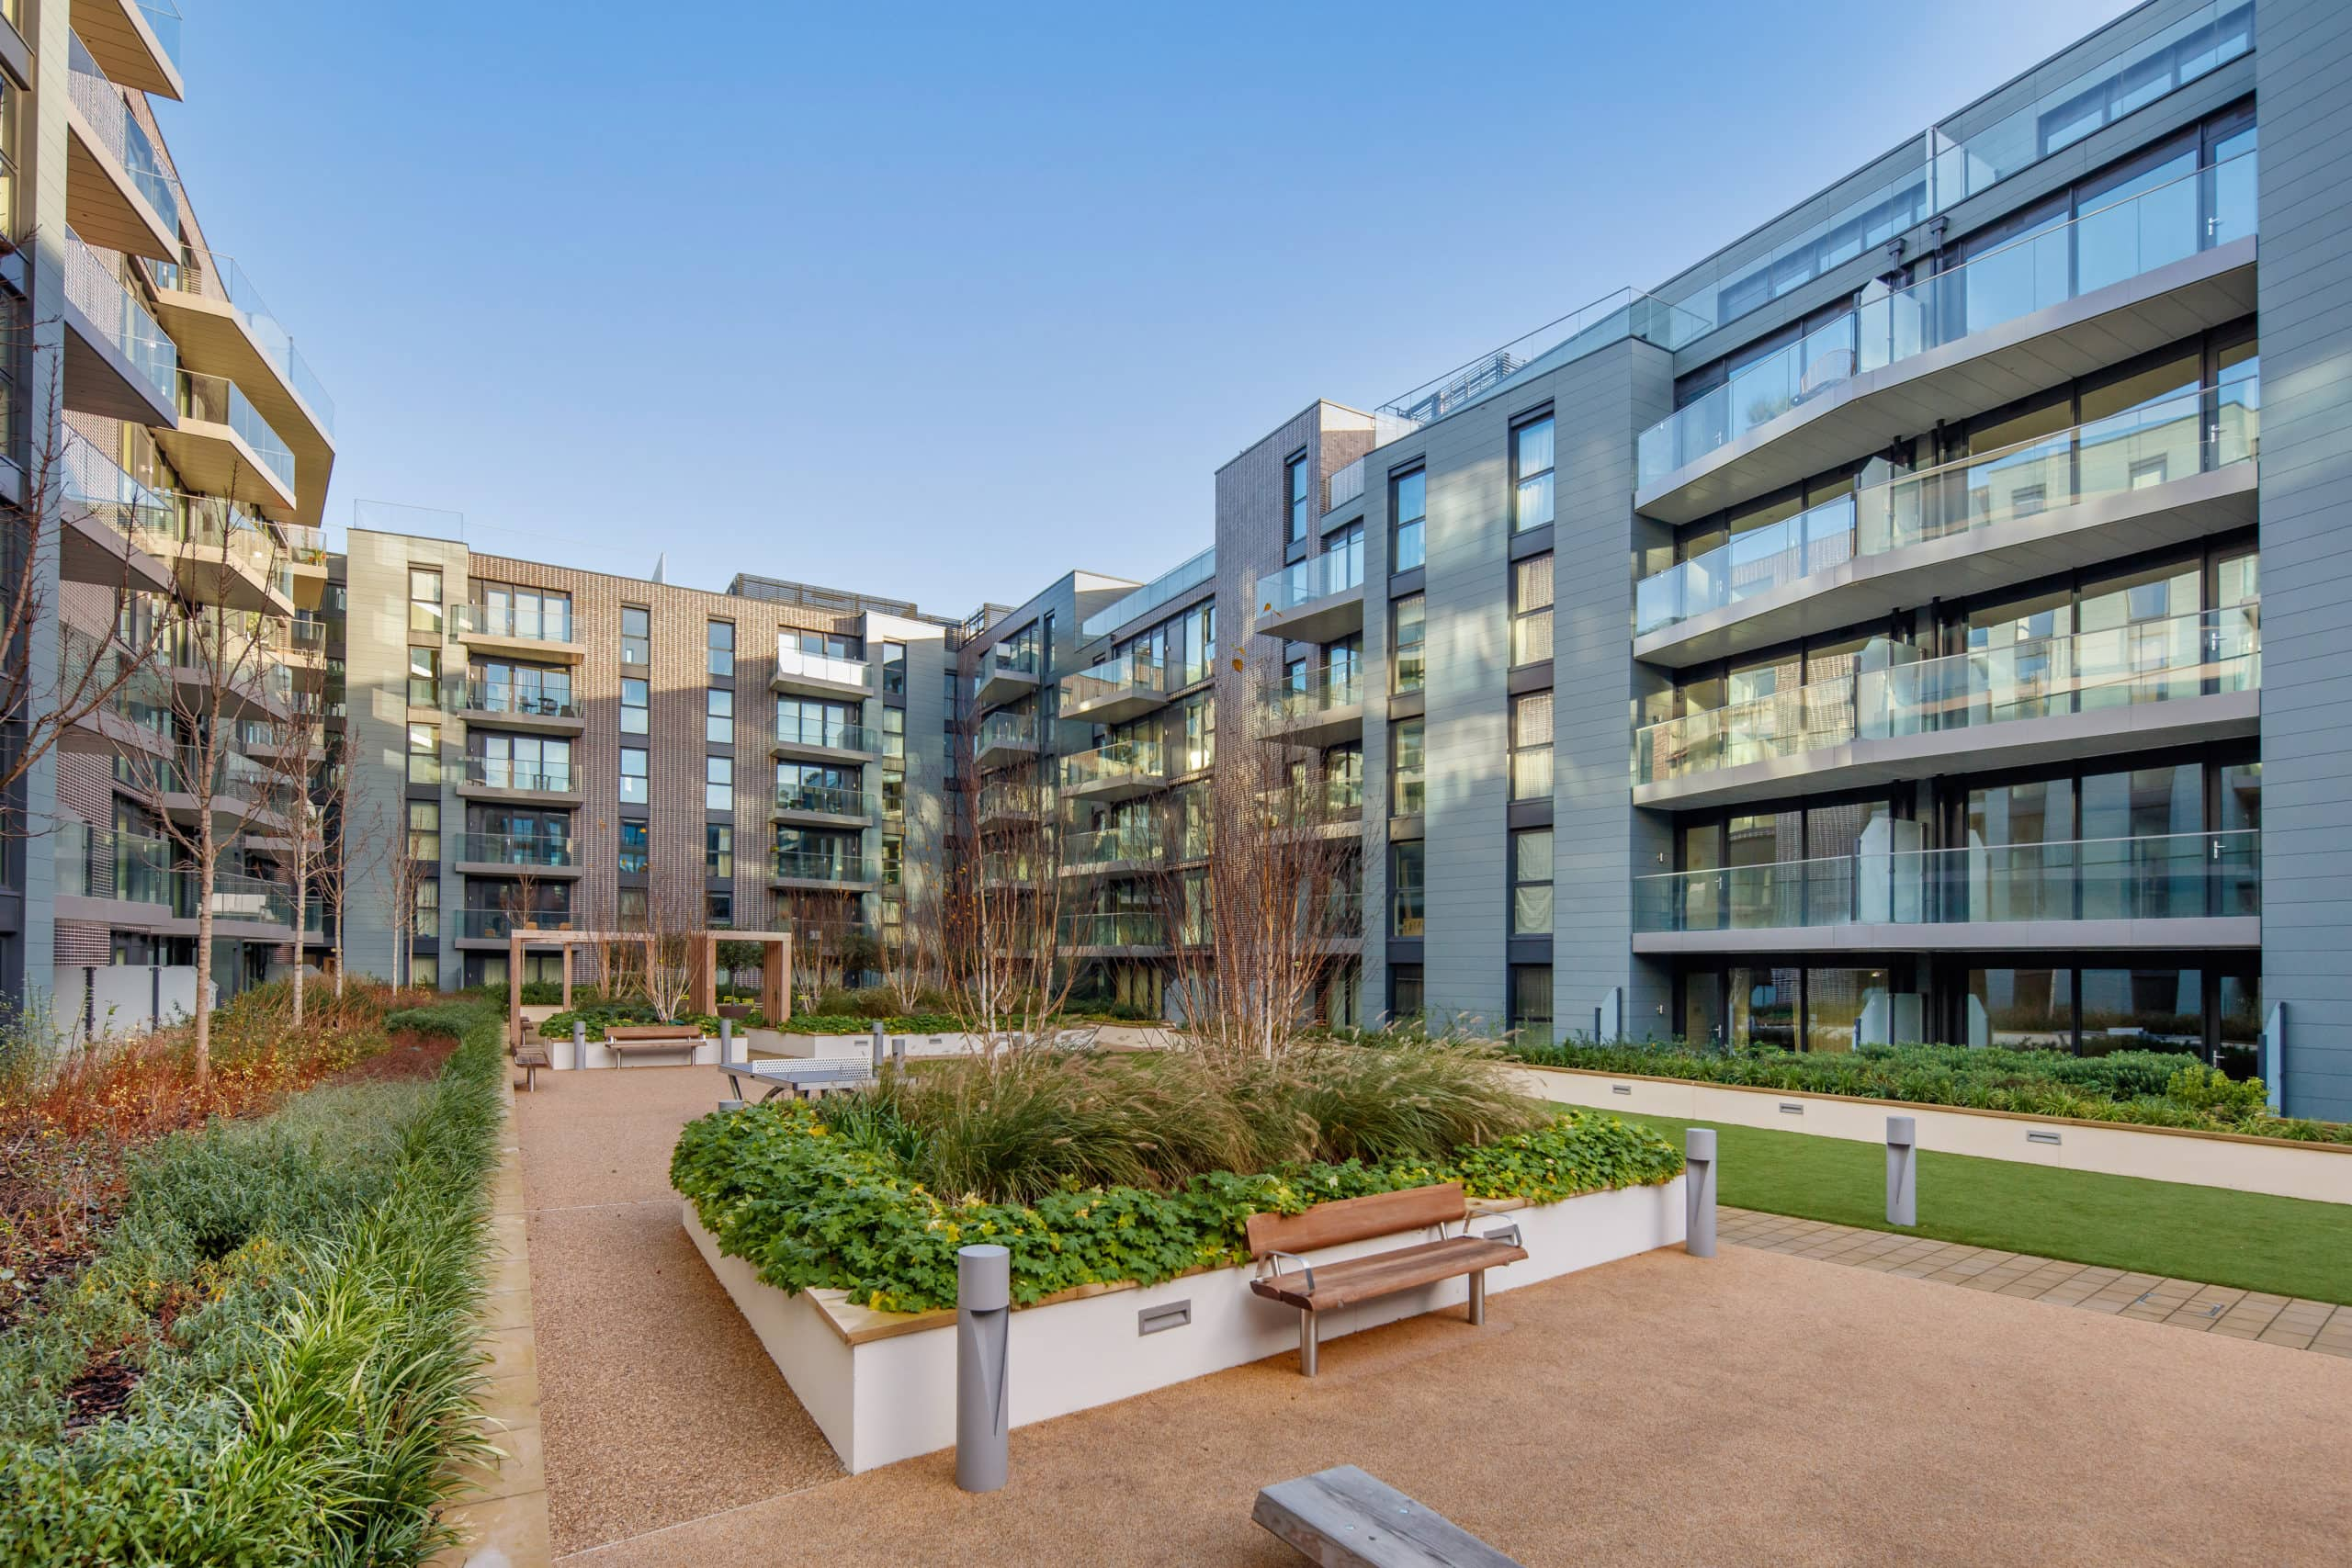 L&Q at Greenwich Square Exterior - Shared Ownership homes available on Share to Buy